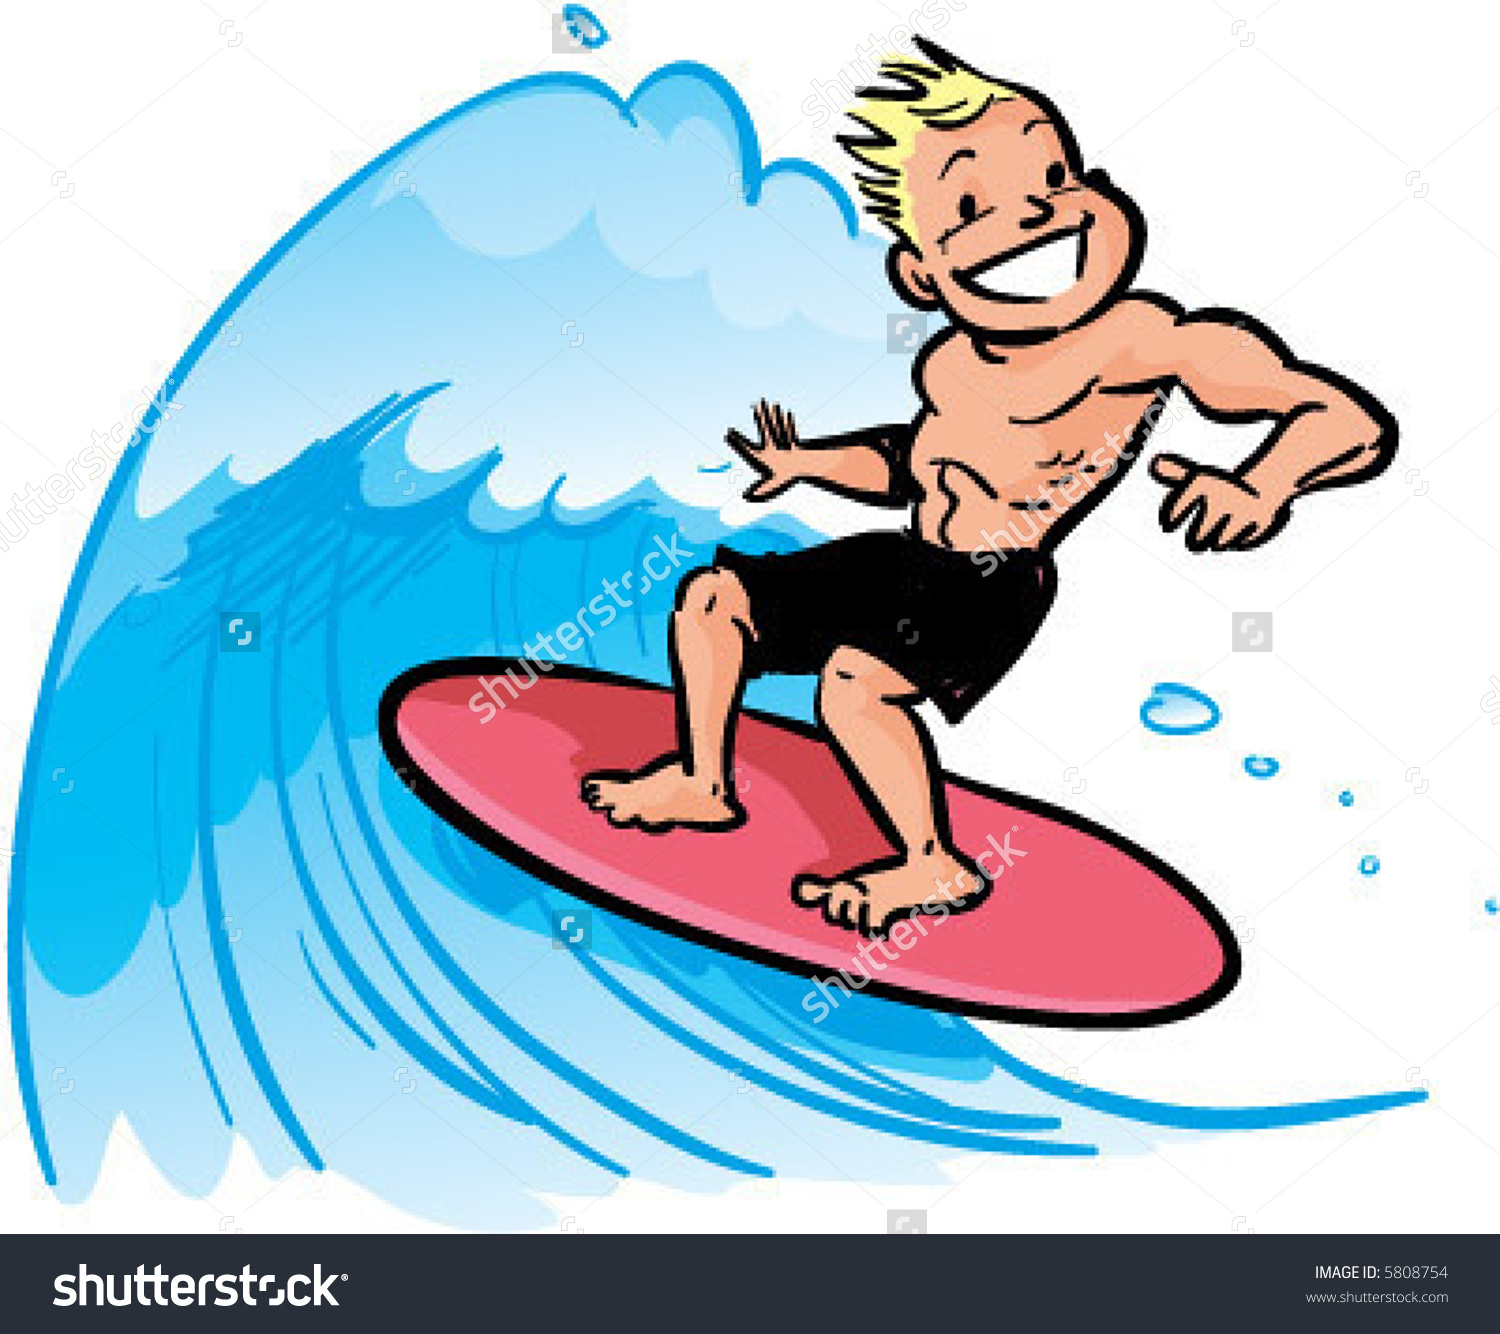 Clipart Old Man Surfing Clipground